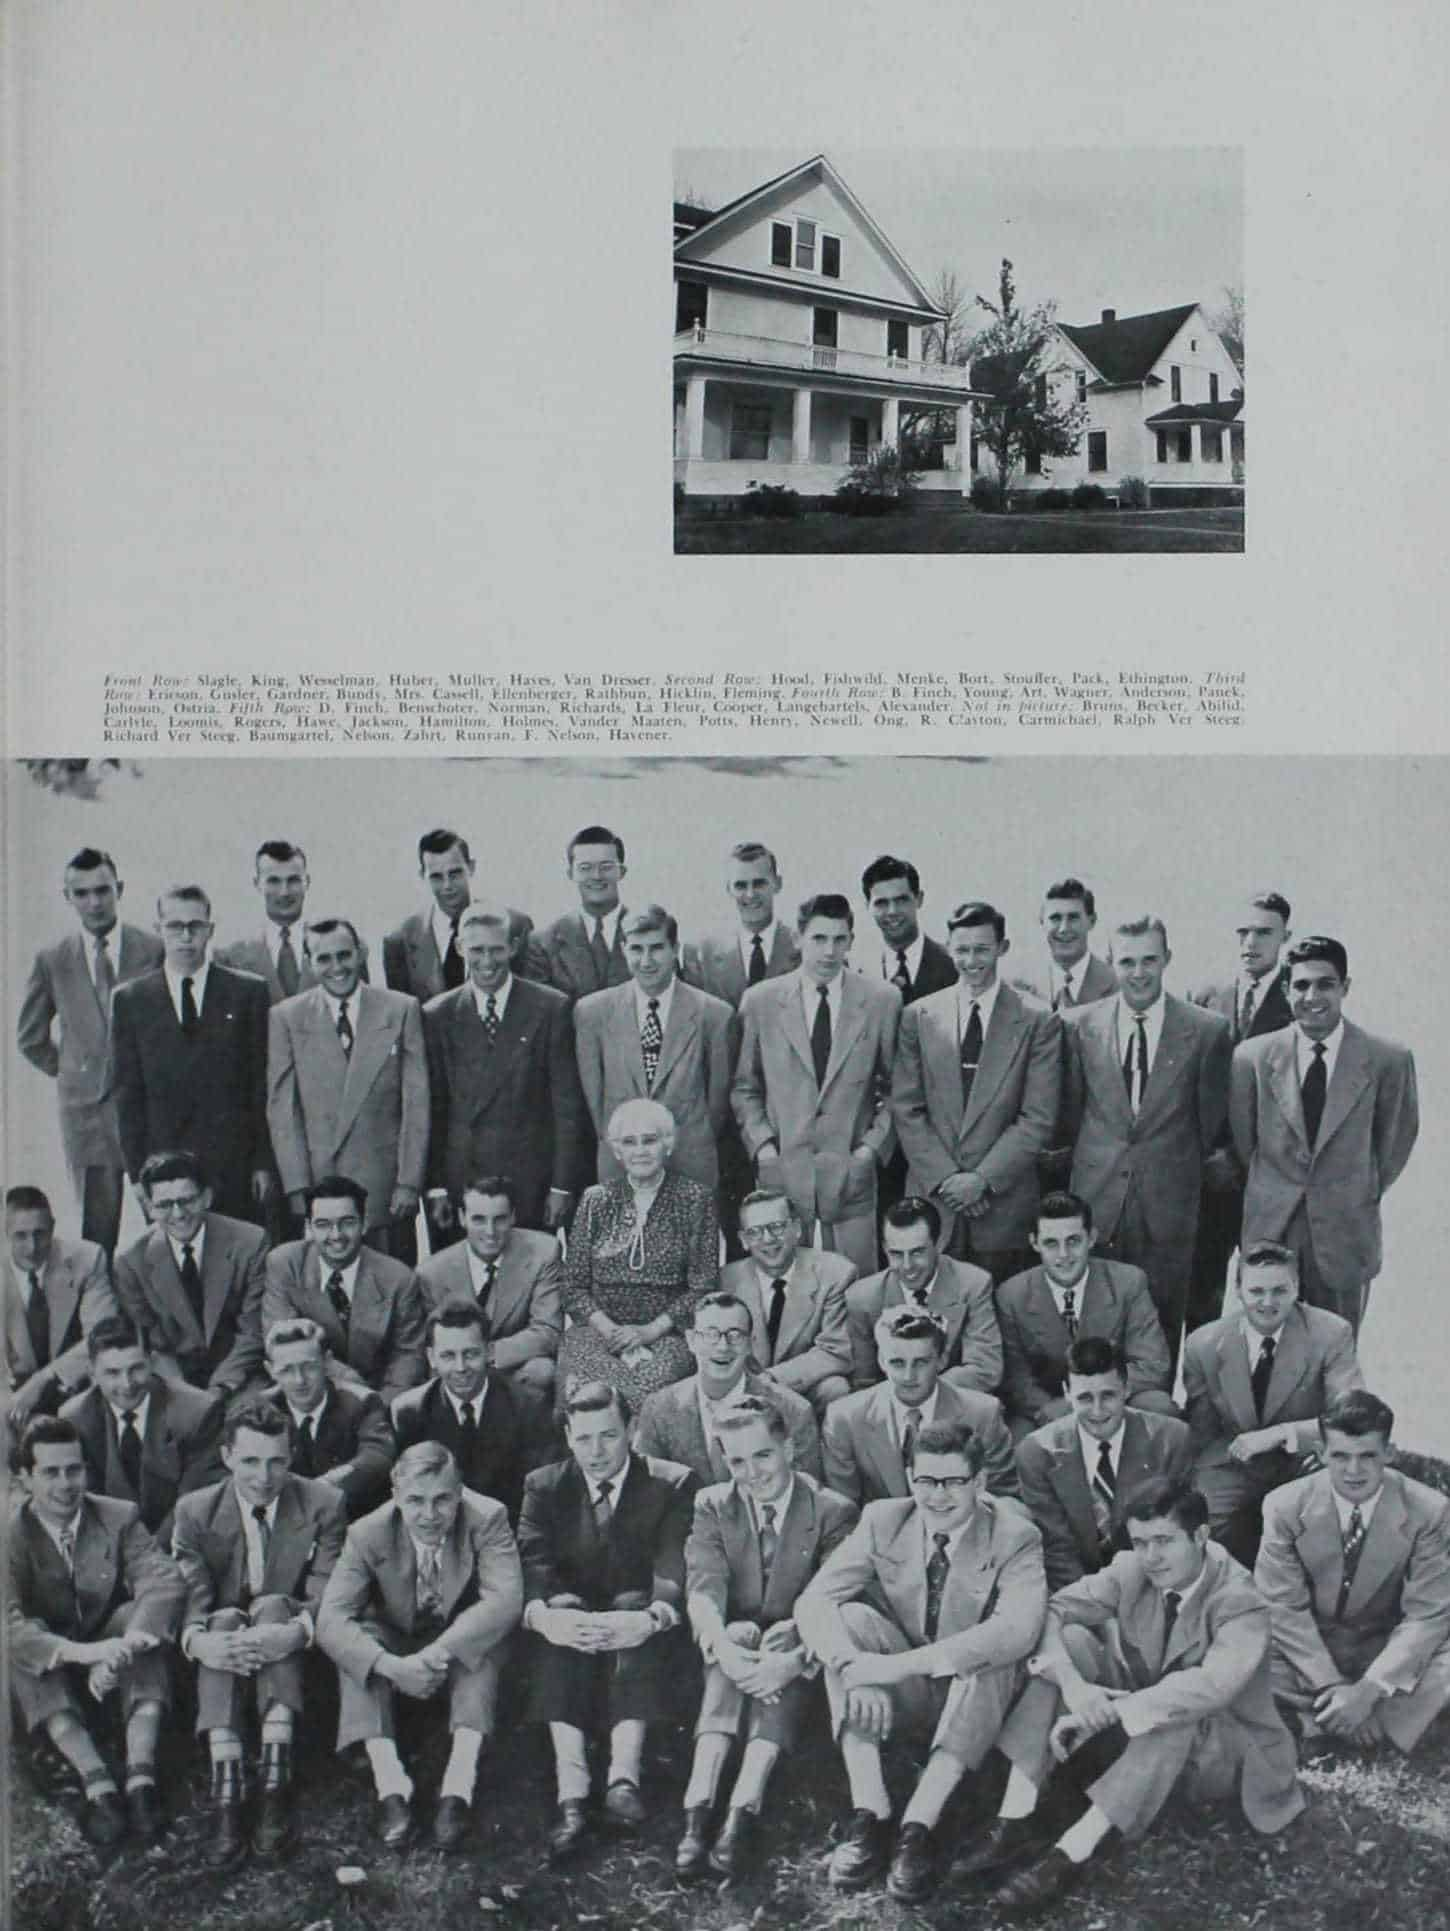 1951 Iowa State Yearbook p.2